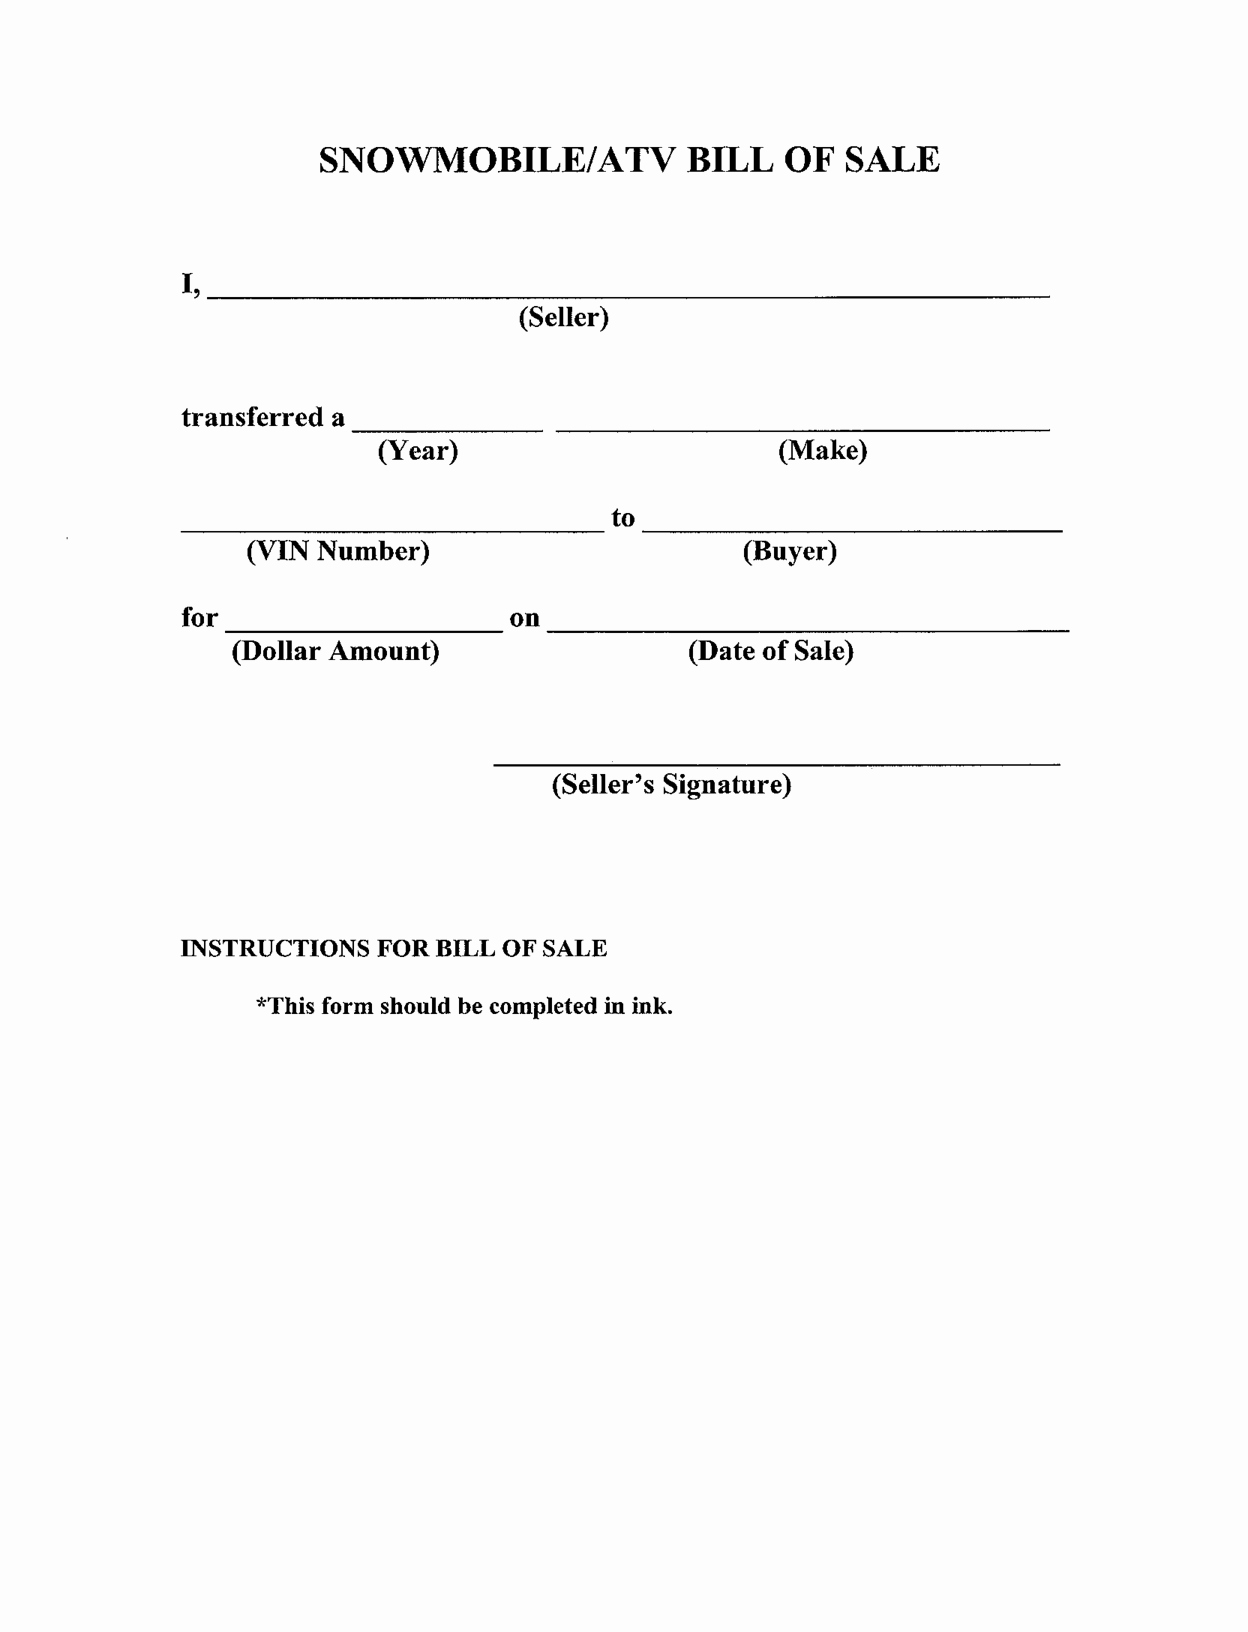 Example Of Bill Of Sale New Free Printable Bill Of Sale Templates form Generic